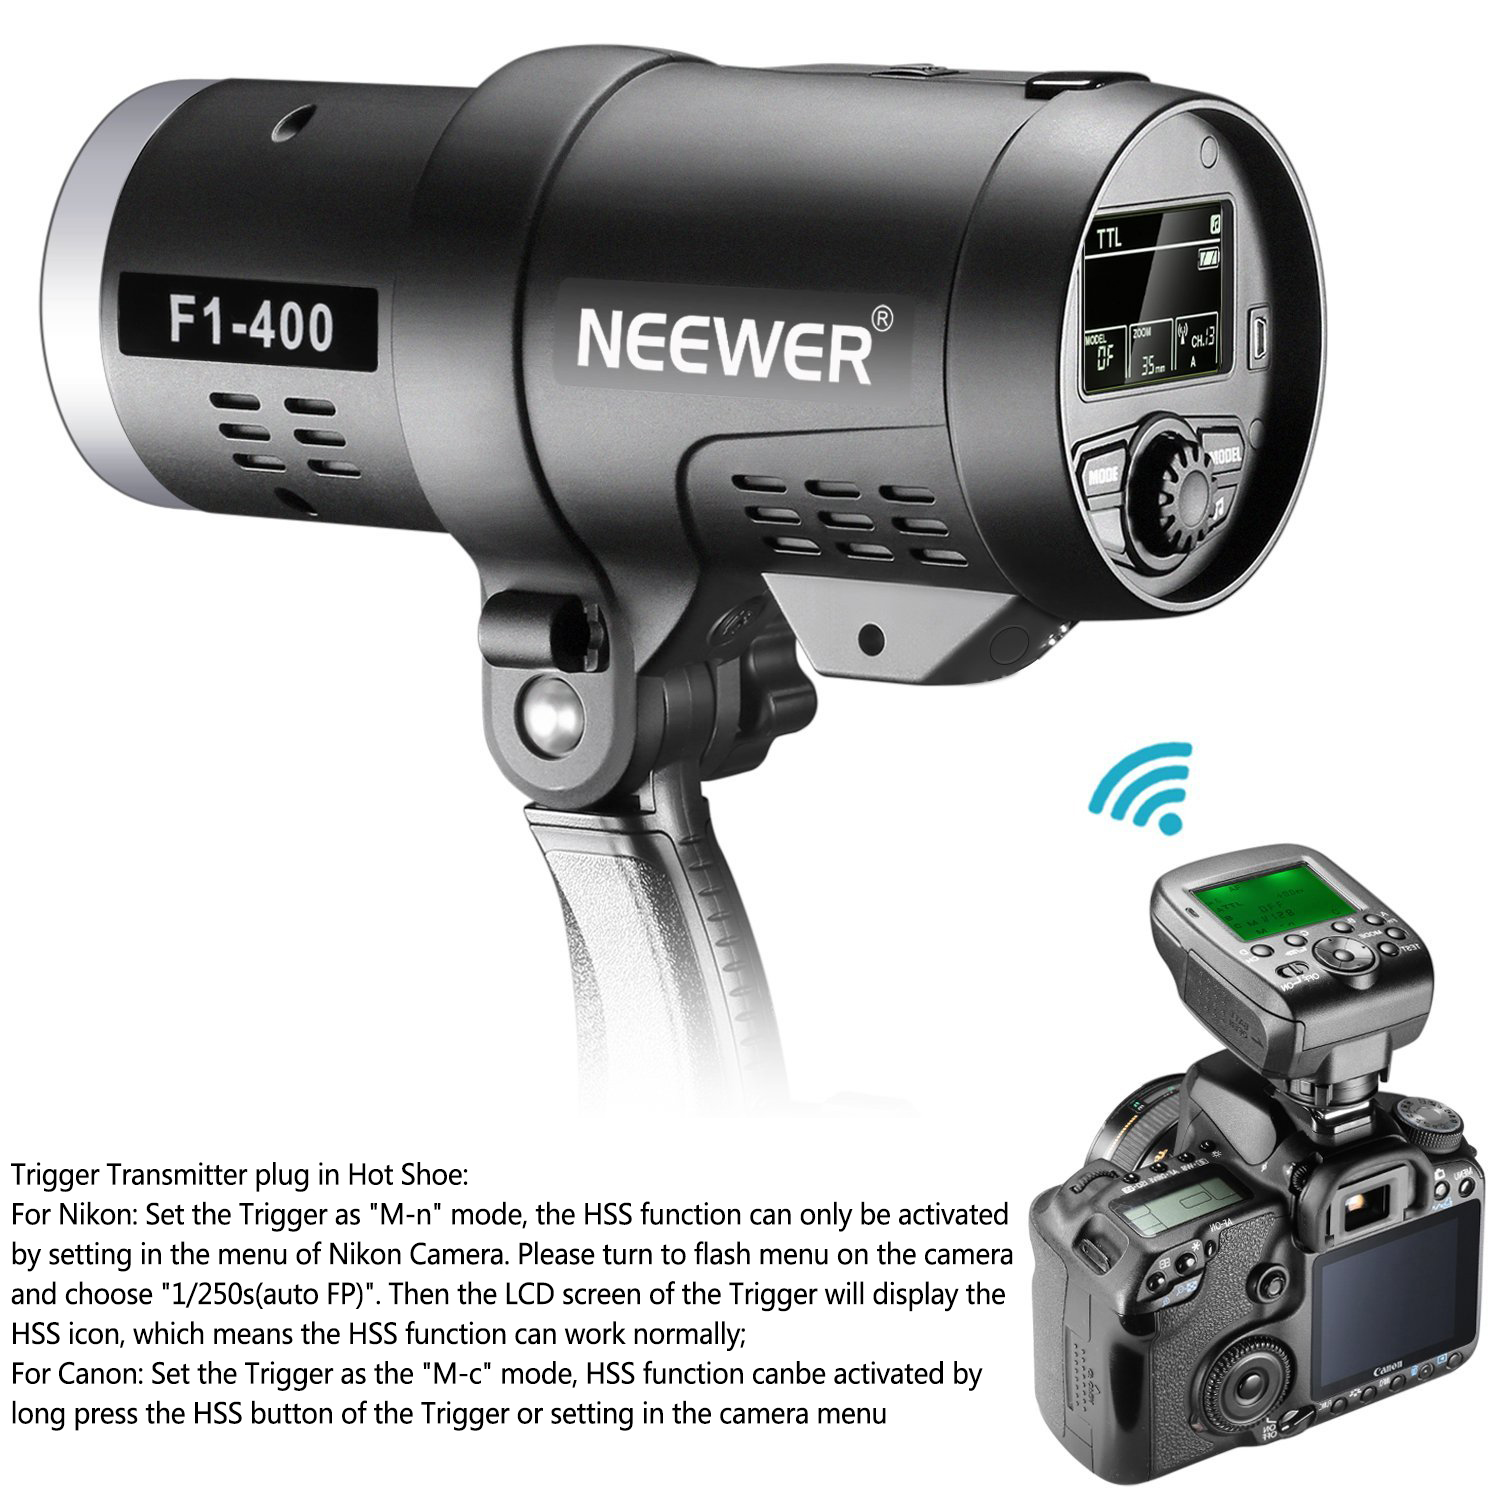 Neewer 400W 2.4G HSS Dual TTL(i TTL And E TTL) Outdoor Flash Strobe Light  For Canon And Nikon Camera, With 2.4G Wireless Trigger And Rechargeable  Li Ion ...